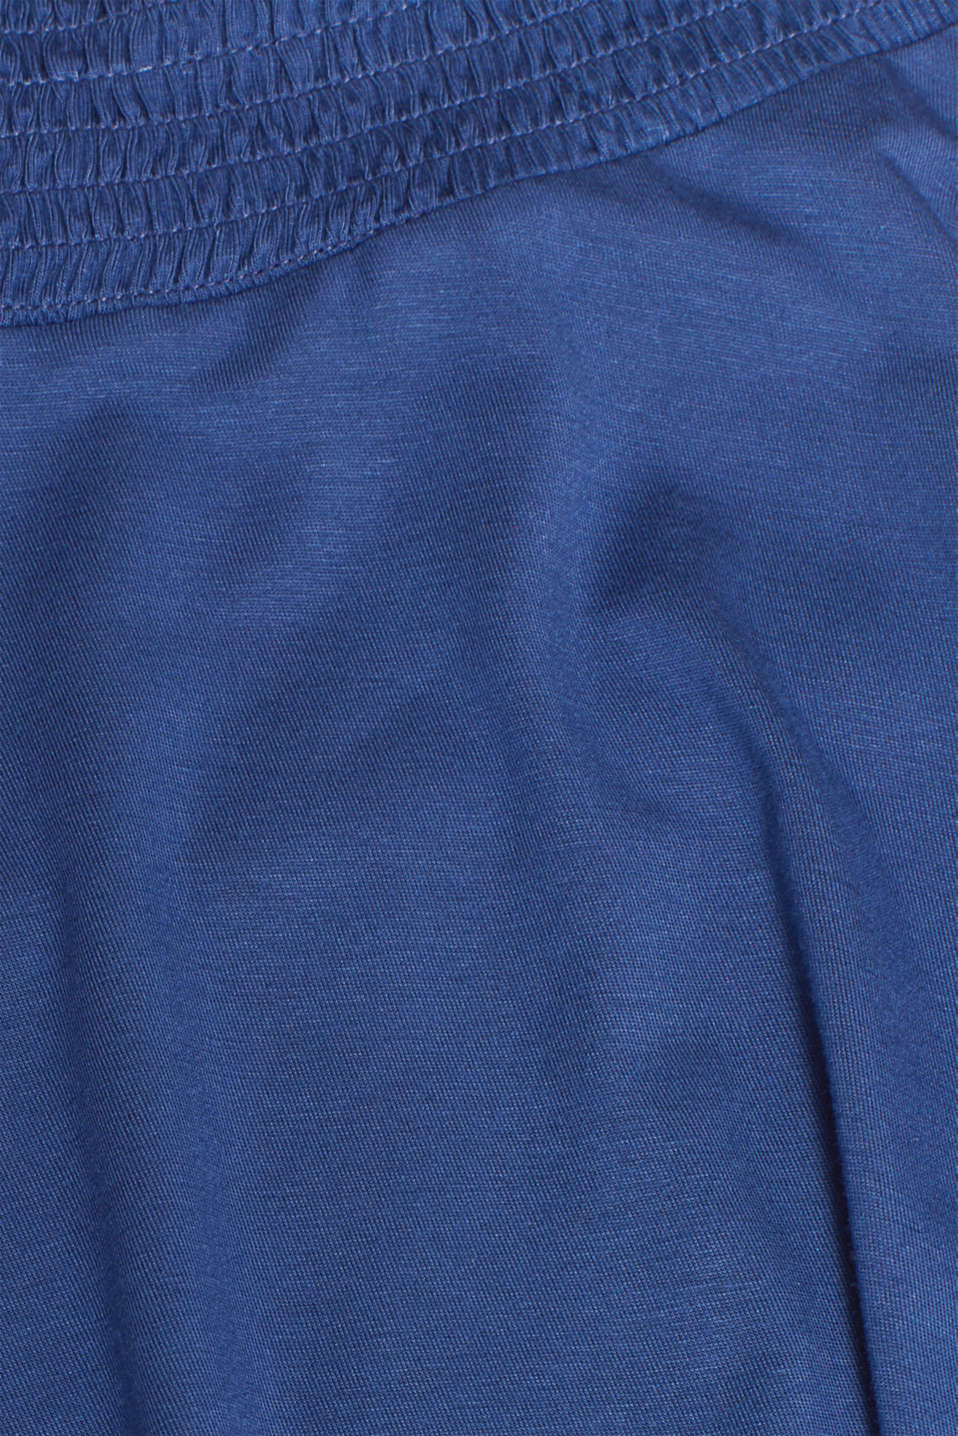 Stretch jersey skirt with a wide elasticated waistband, LCDARK BLUE, detail image number 4